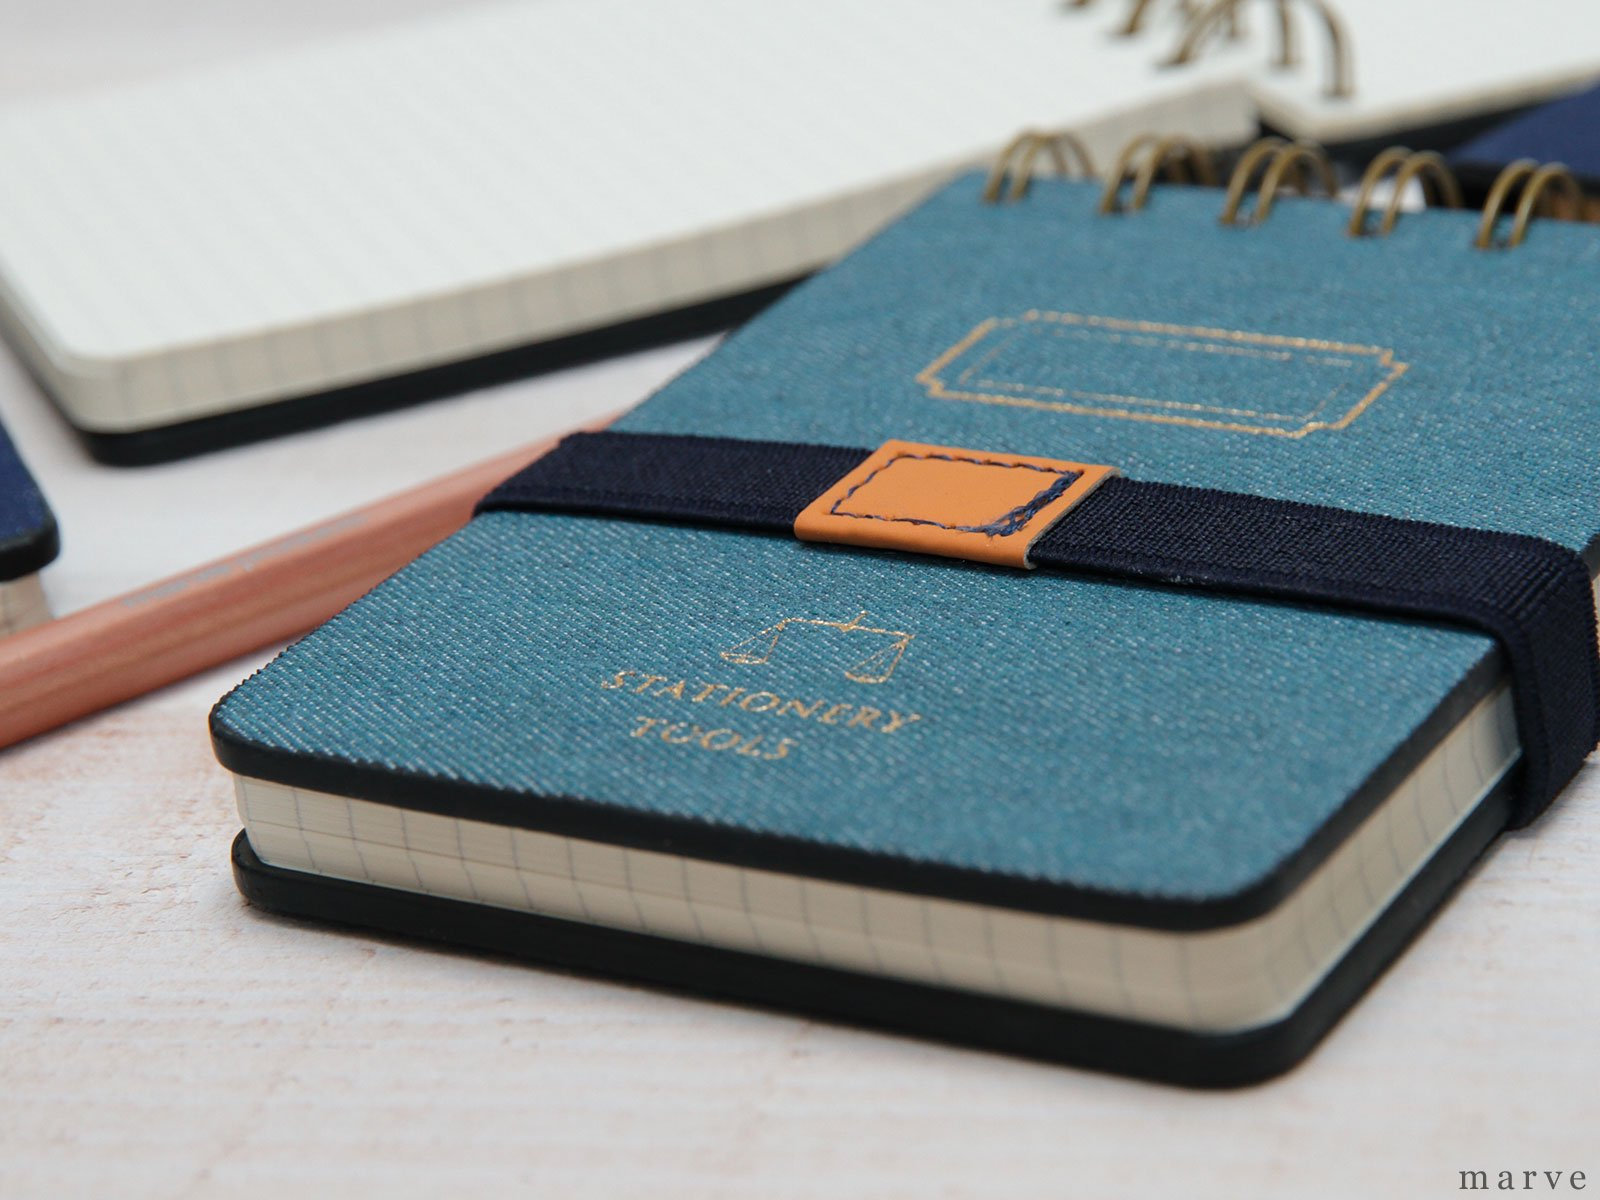 デニムカバーメモ TOOLS DENIM MEMO PAD B7 BLUE